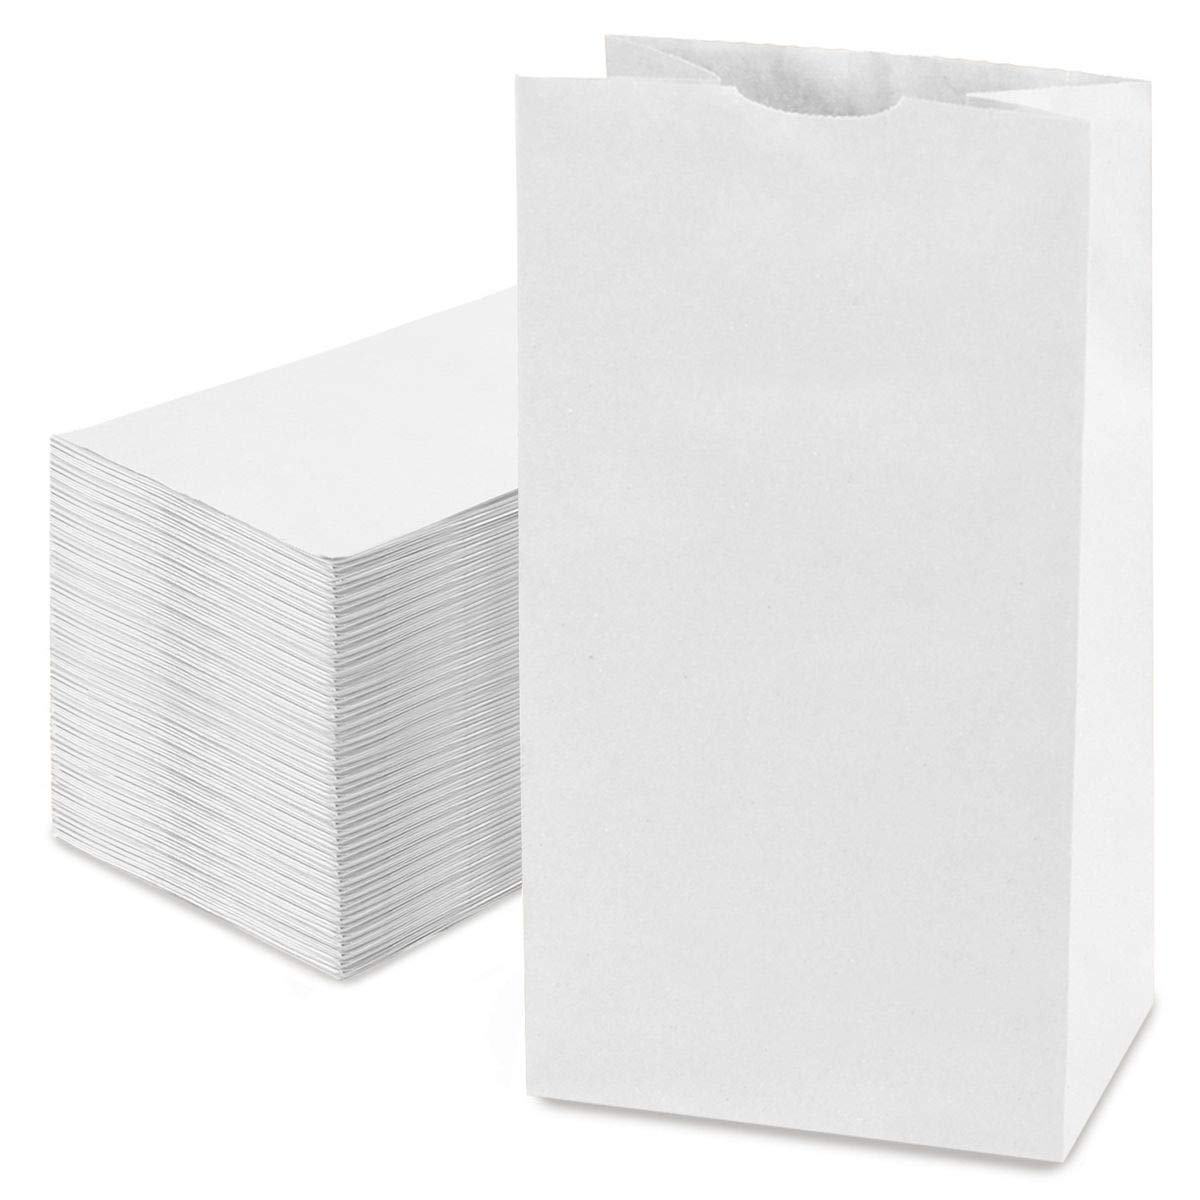 Fit Meal Prep [125 Pack] 20 LB 16 x 8 x 5.5 Heavy Duty White Paper Bags Grocery Lunch Retail Shopping Durable Bleached Barrel Sack